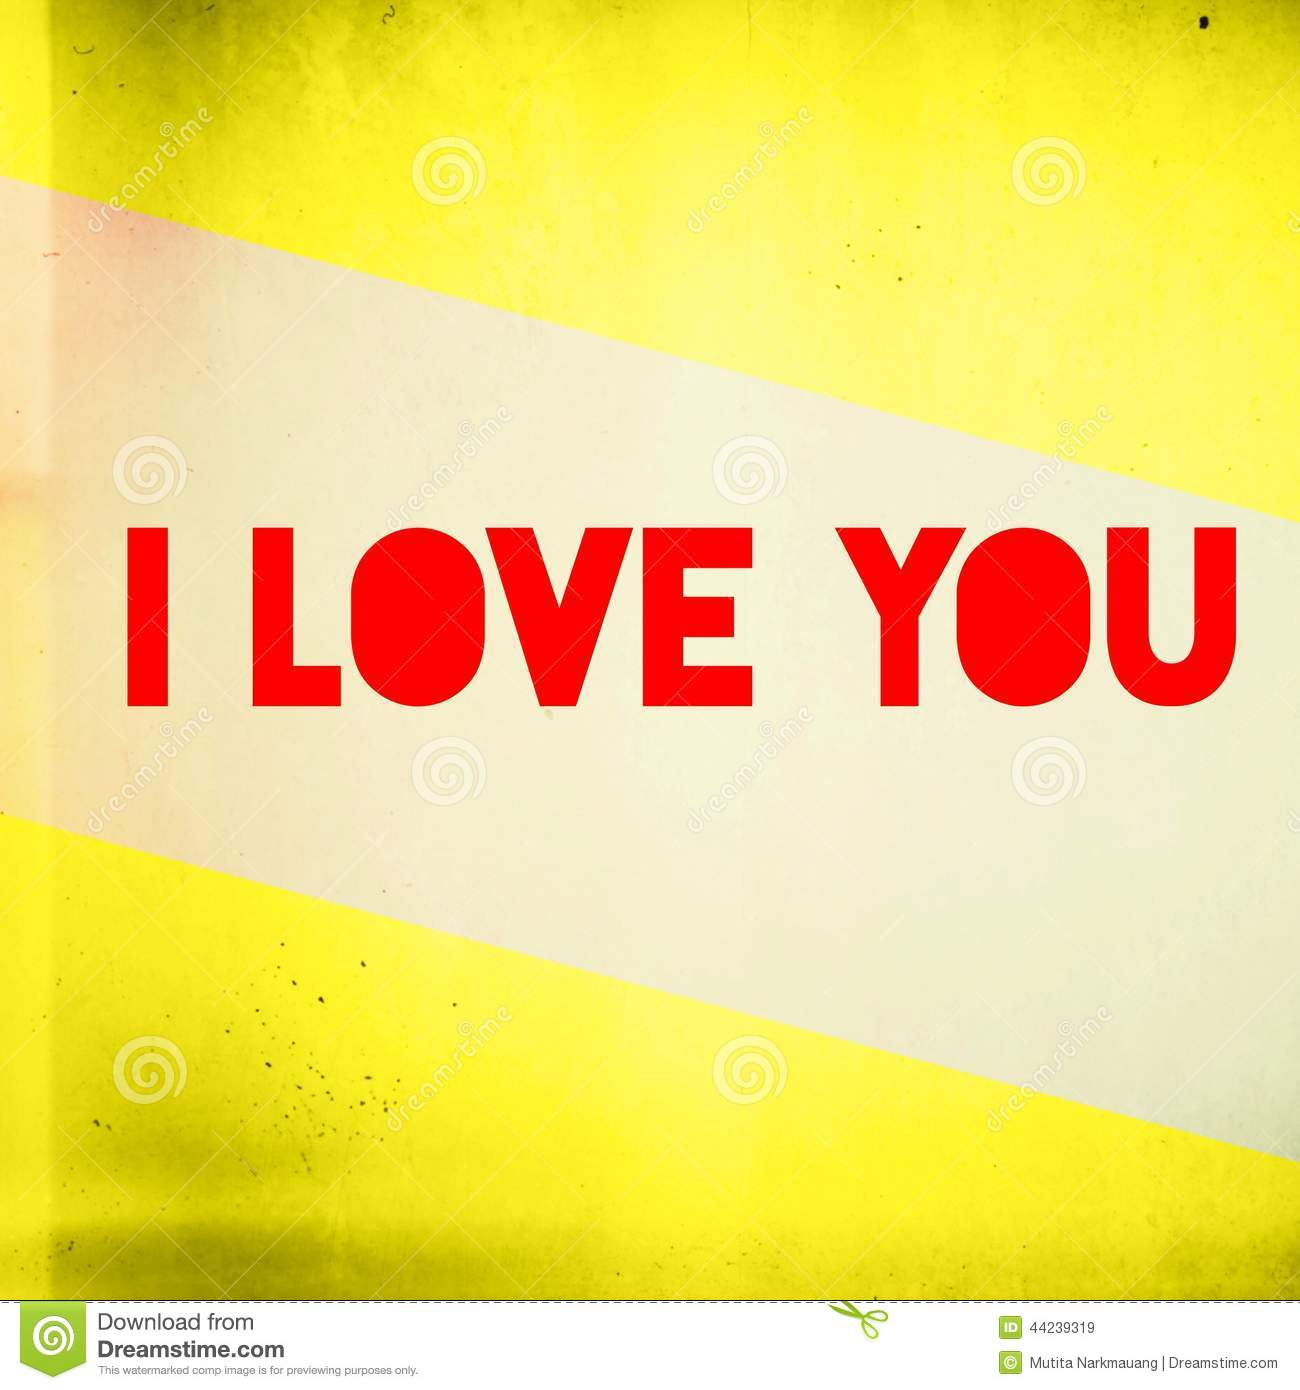 I Love You Emotional Quotes : emotional-inspirational-quotations-i-love-you-quotation-44239319.jpg